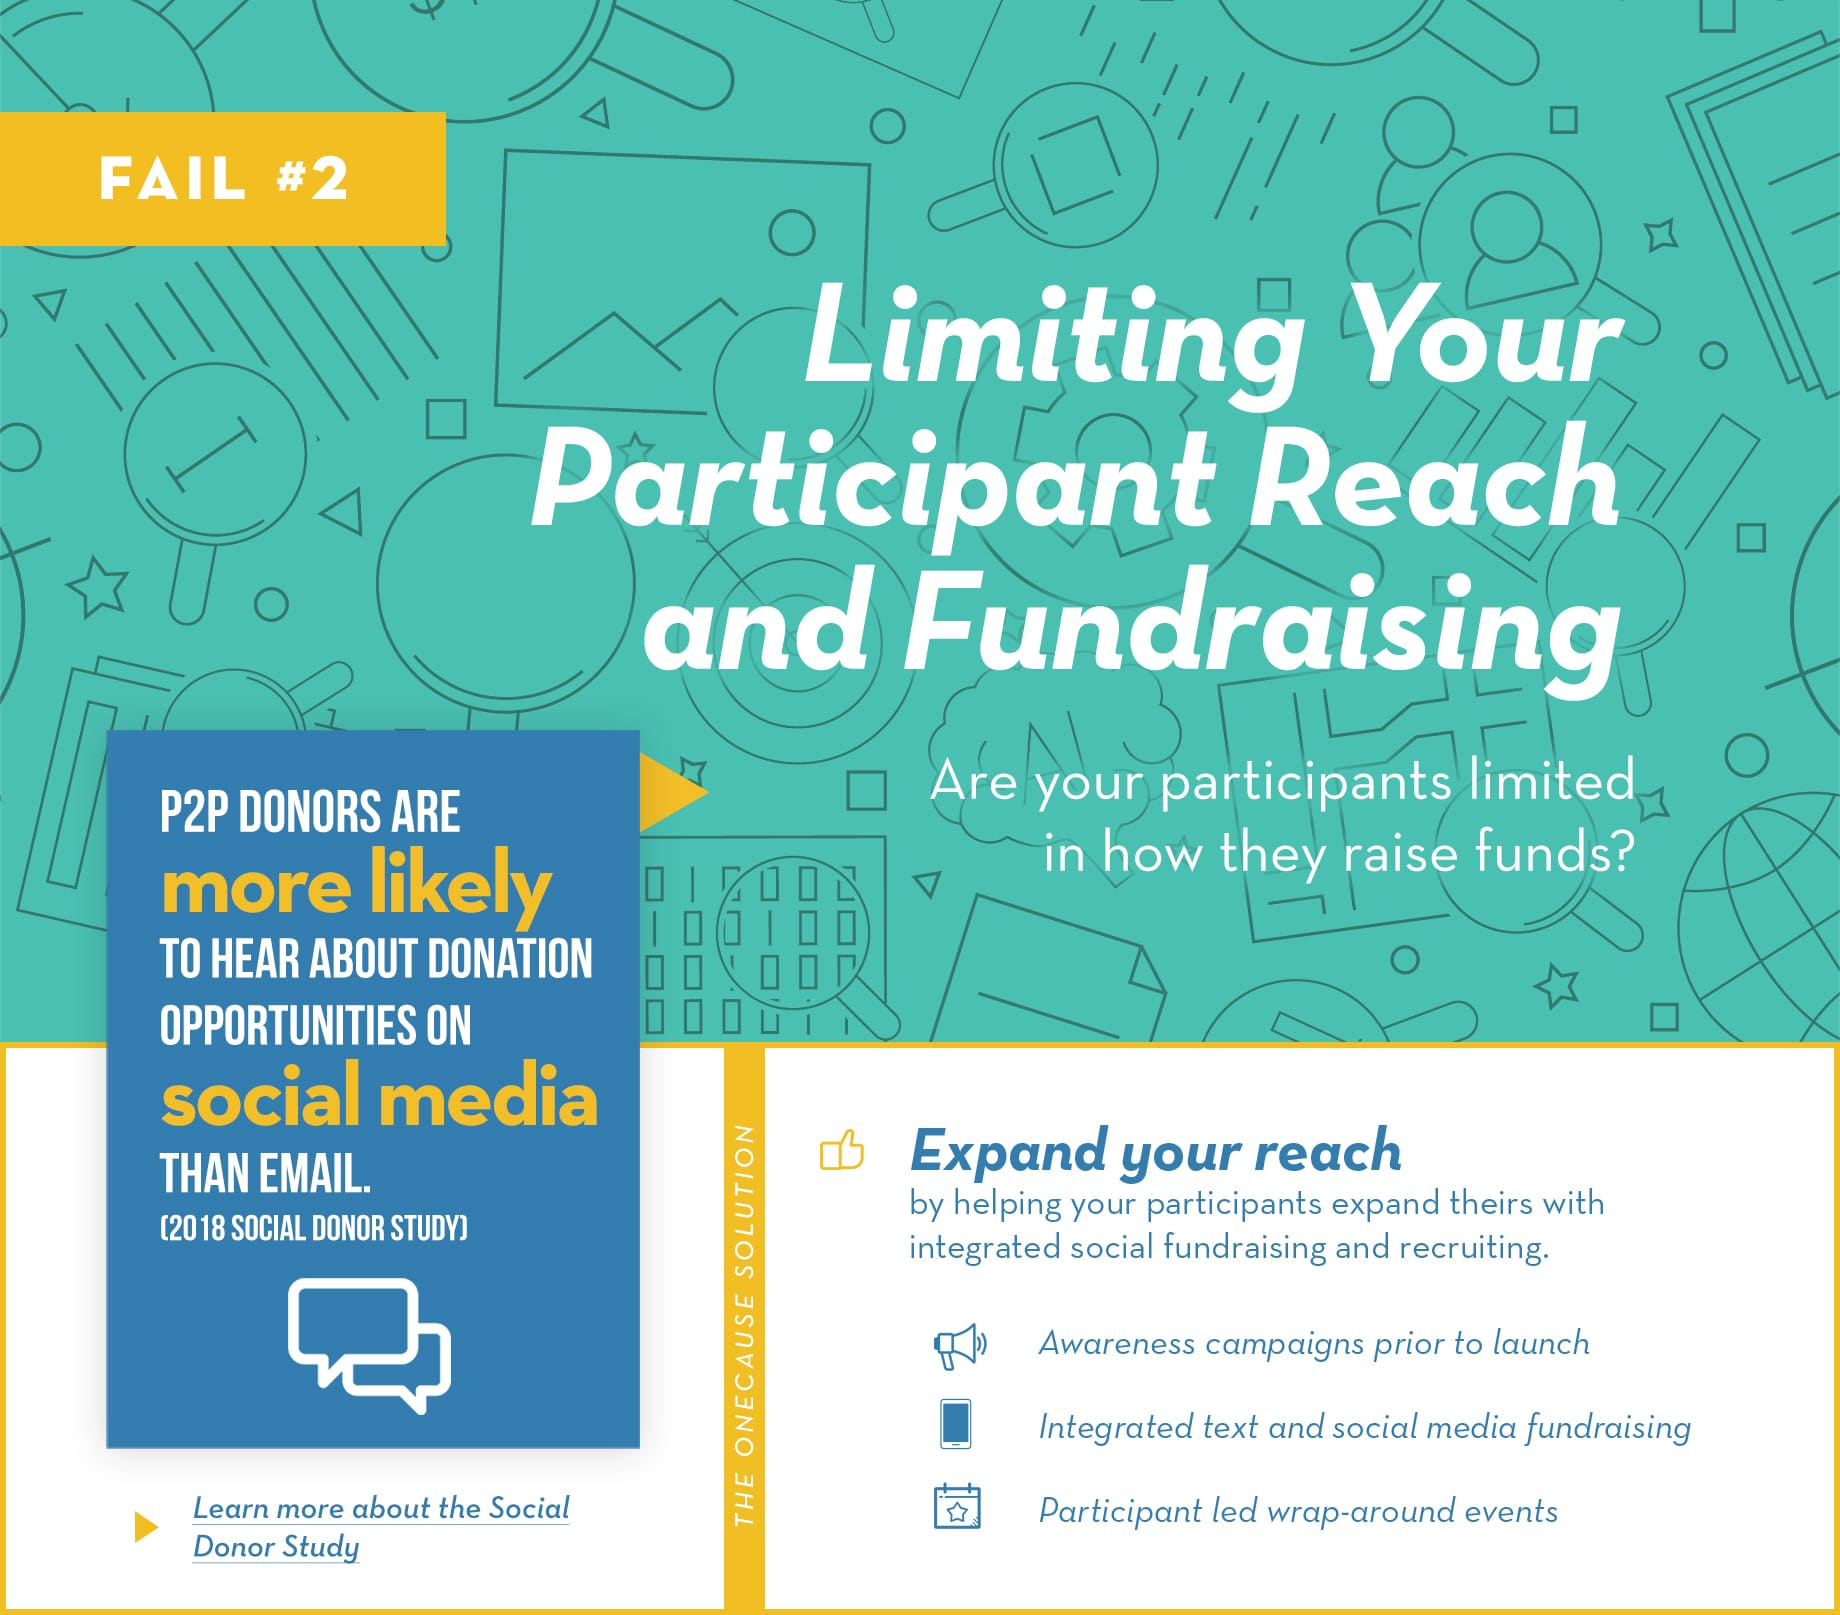 Fail #2: Limiting your participant reach and fundraising. Are your participants limited in how they raise funds?